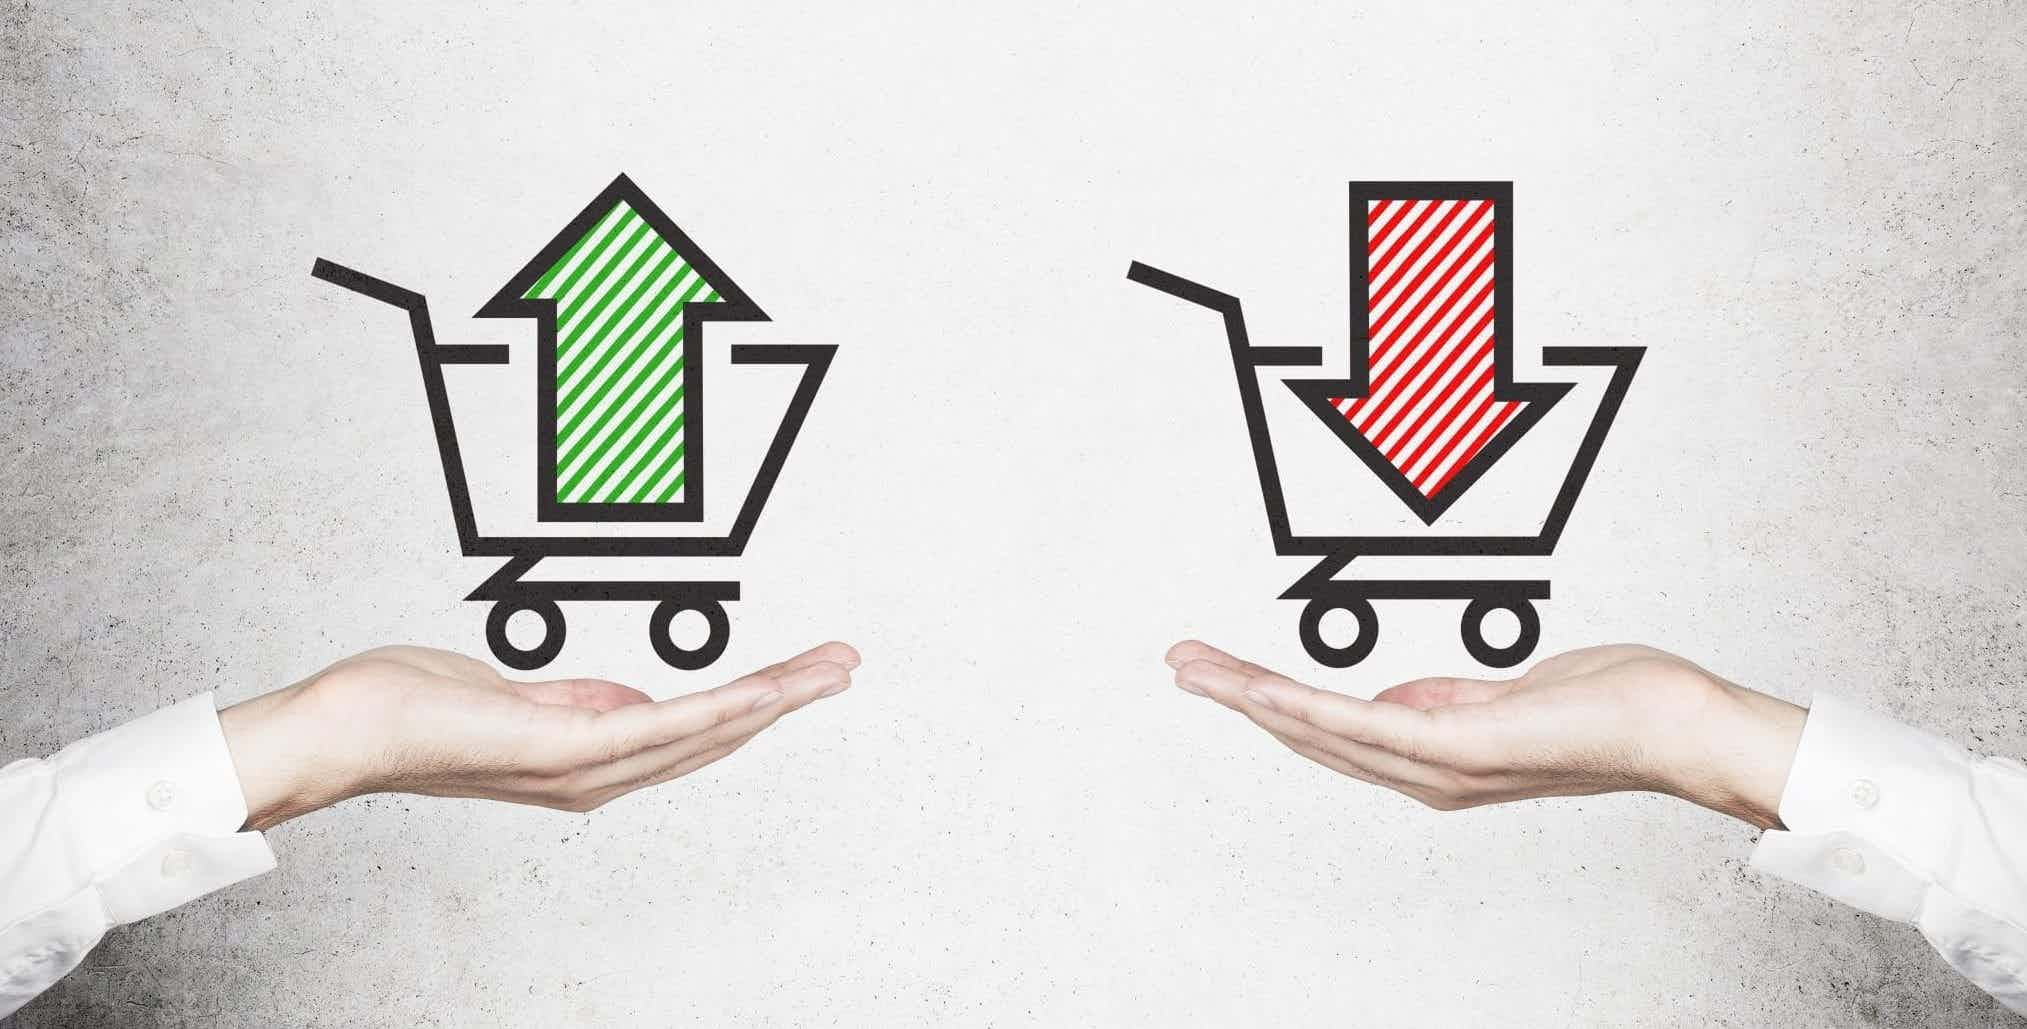 Green up arrow in cart and red down arrow in cart to represent buyer's and seller's market